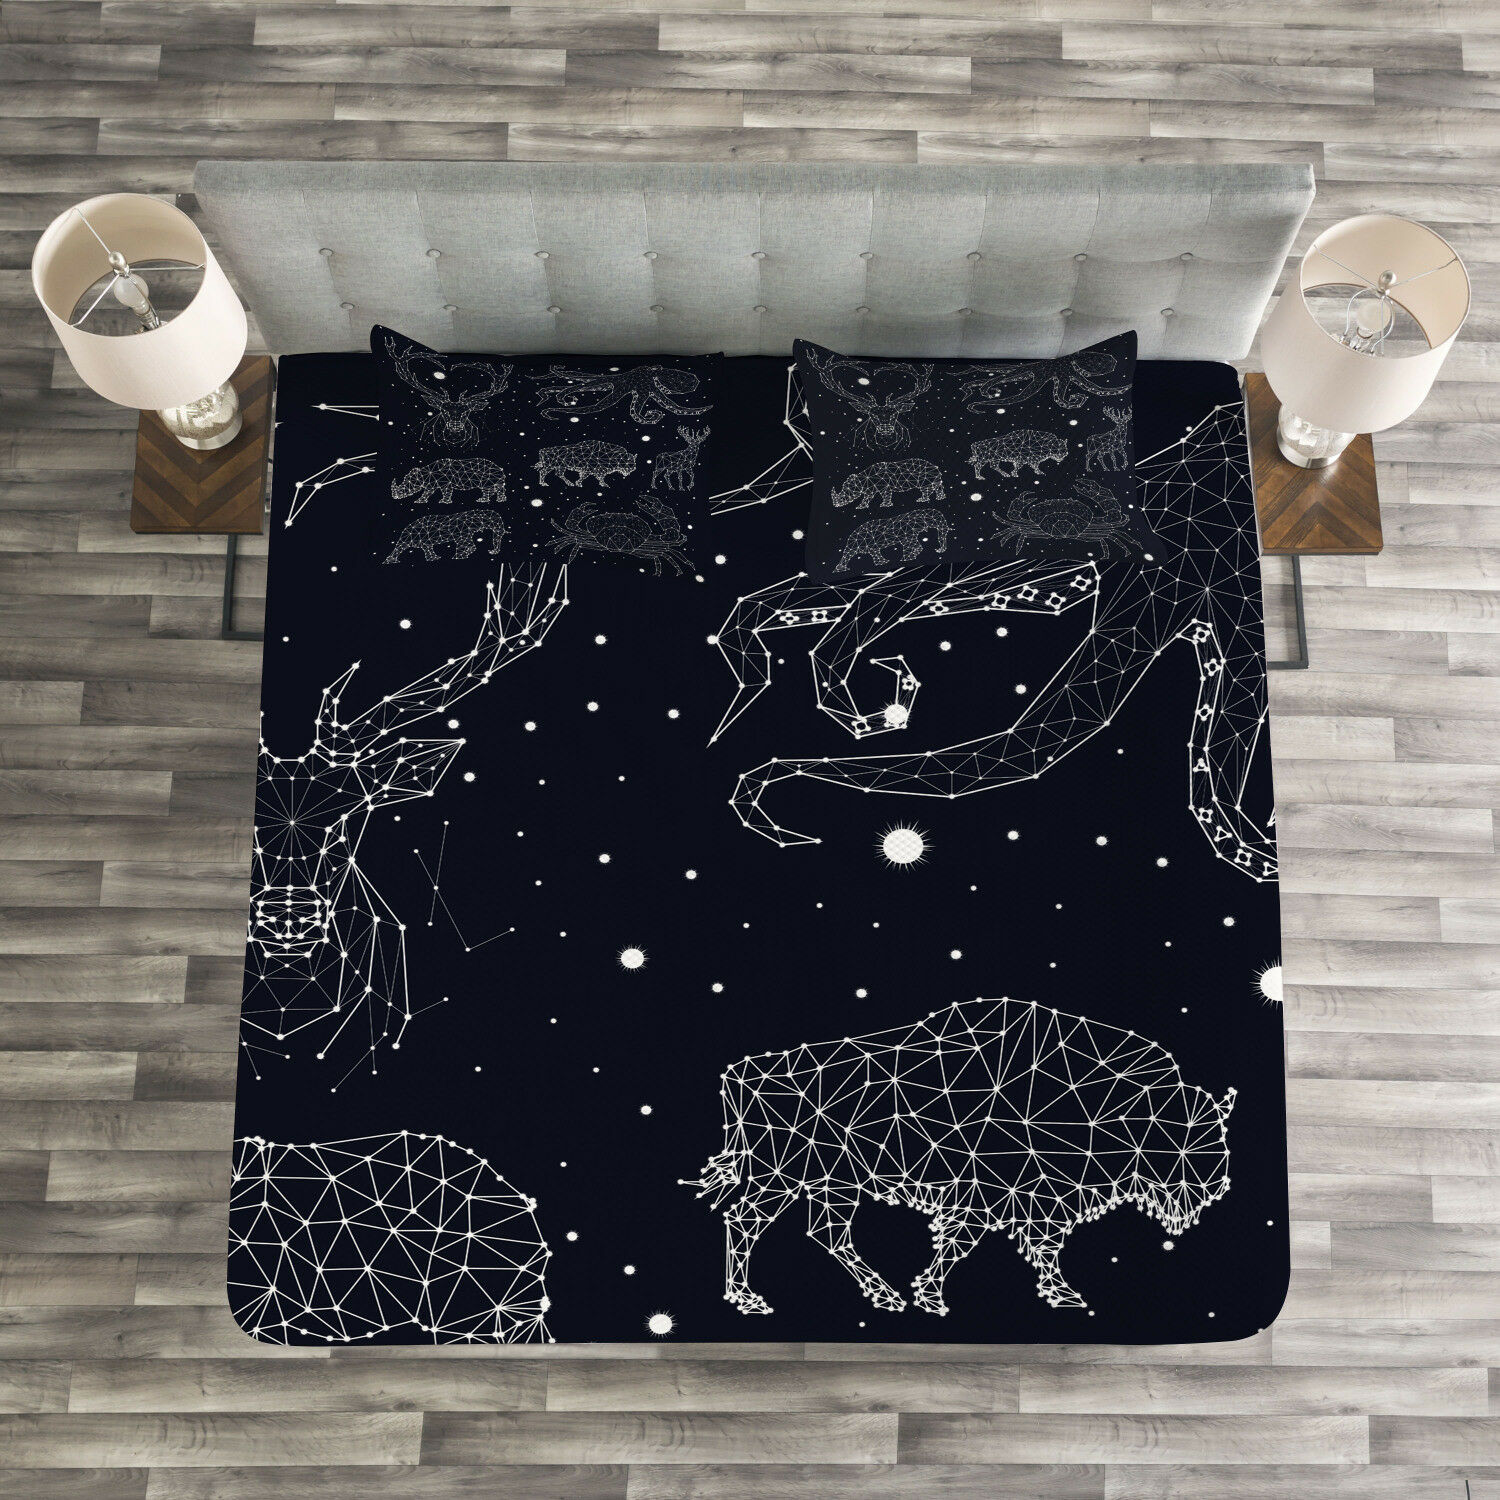 Octopus Quilted Bedspread & Pillow Shams Set, Constellation Signs Print